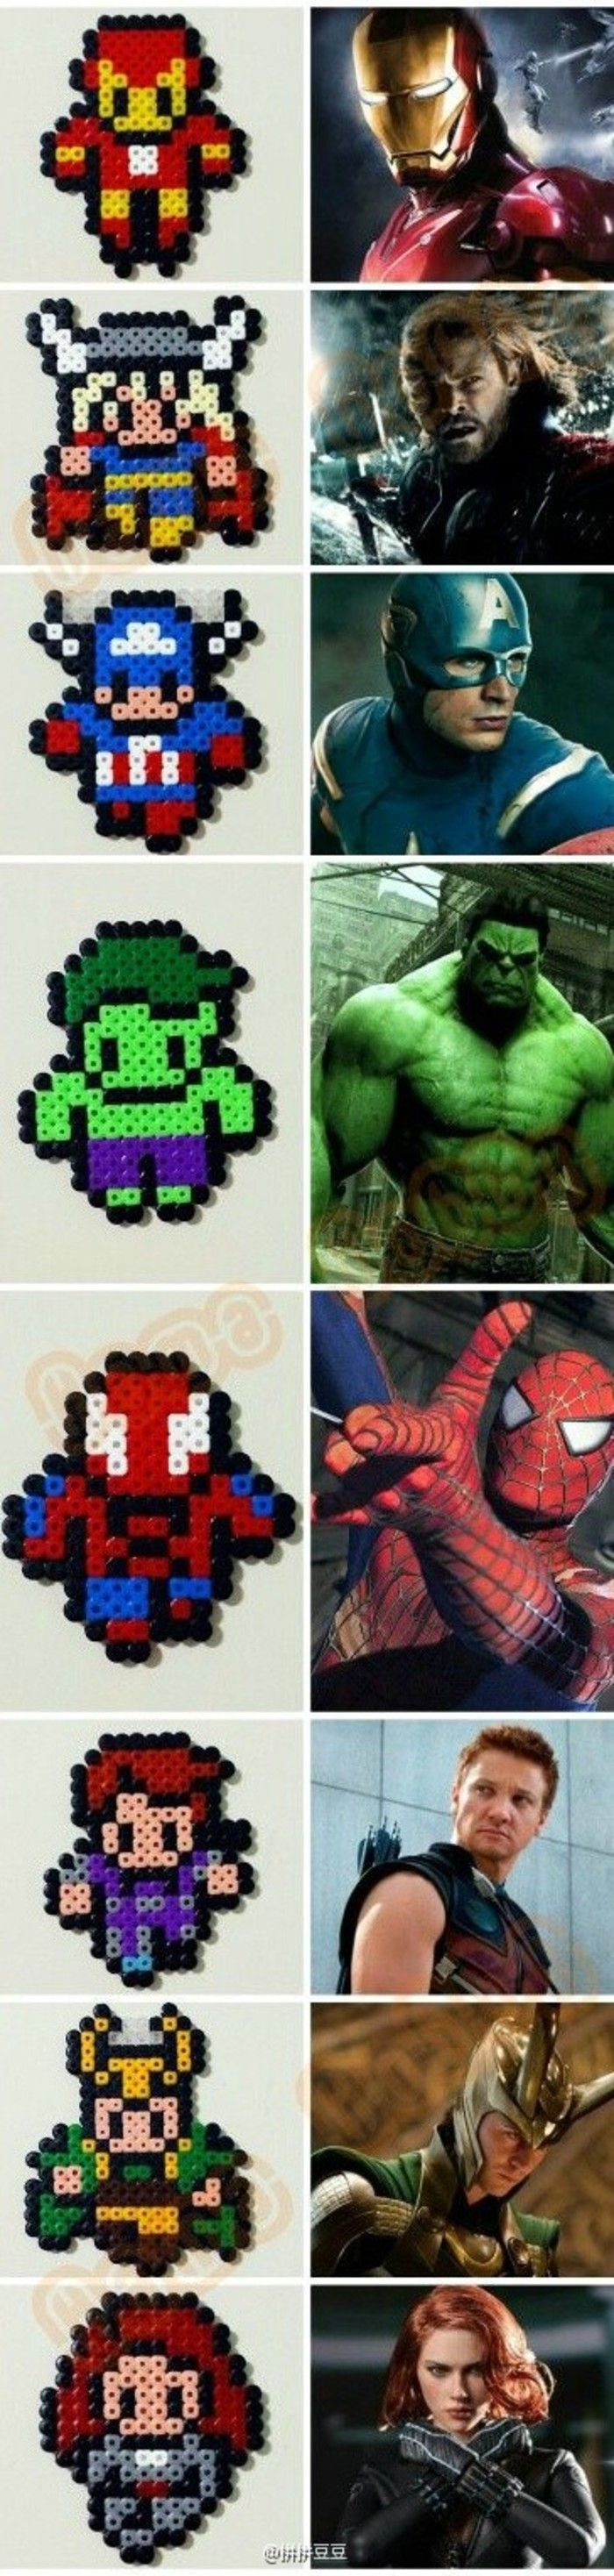 The Avengers - Marvel perler beads